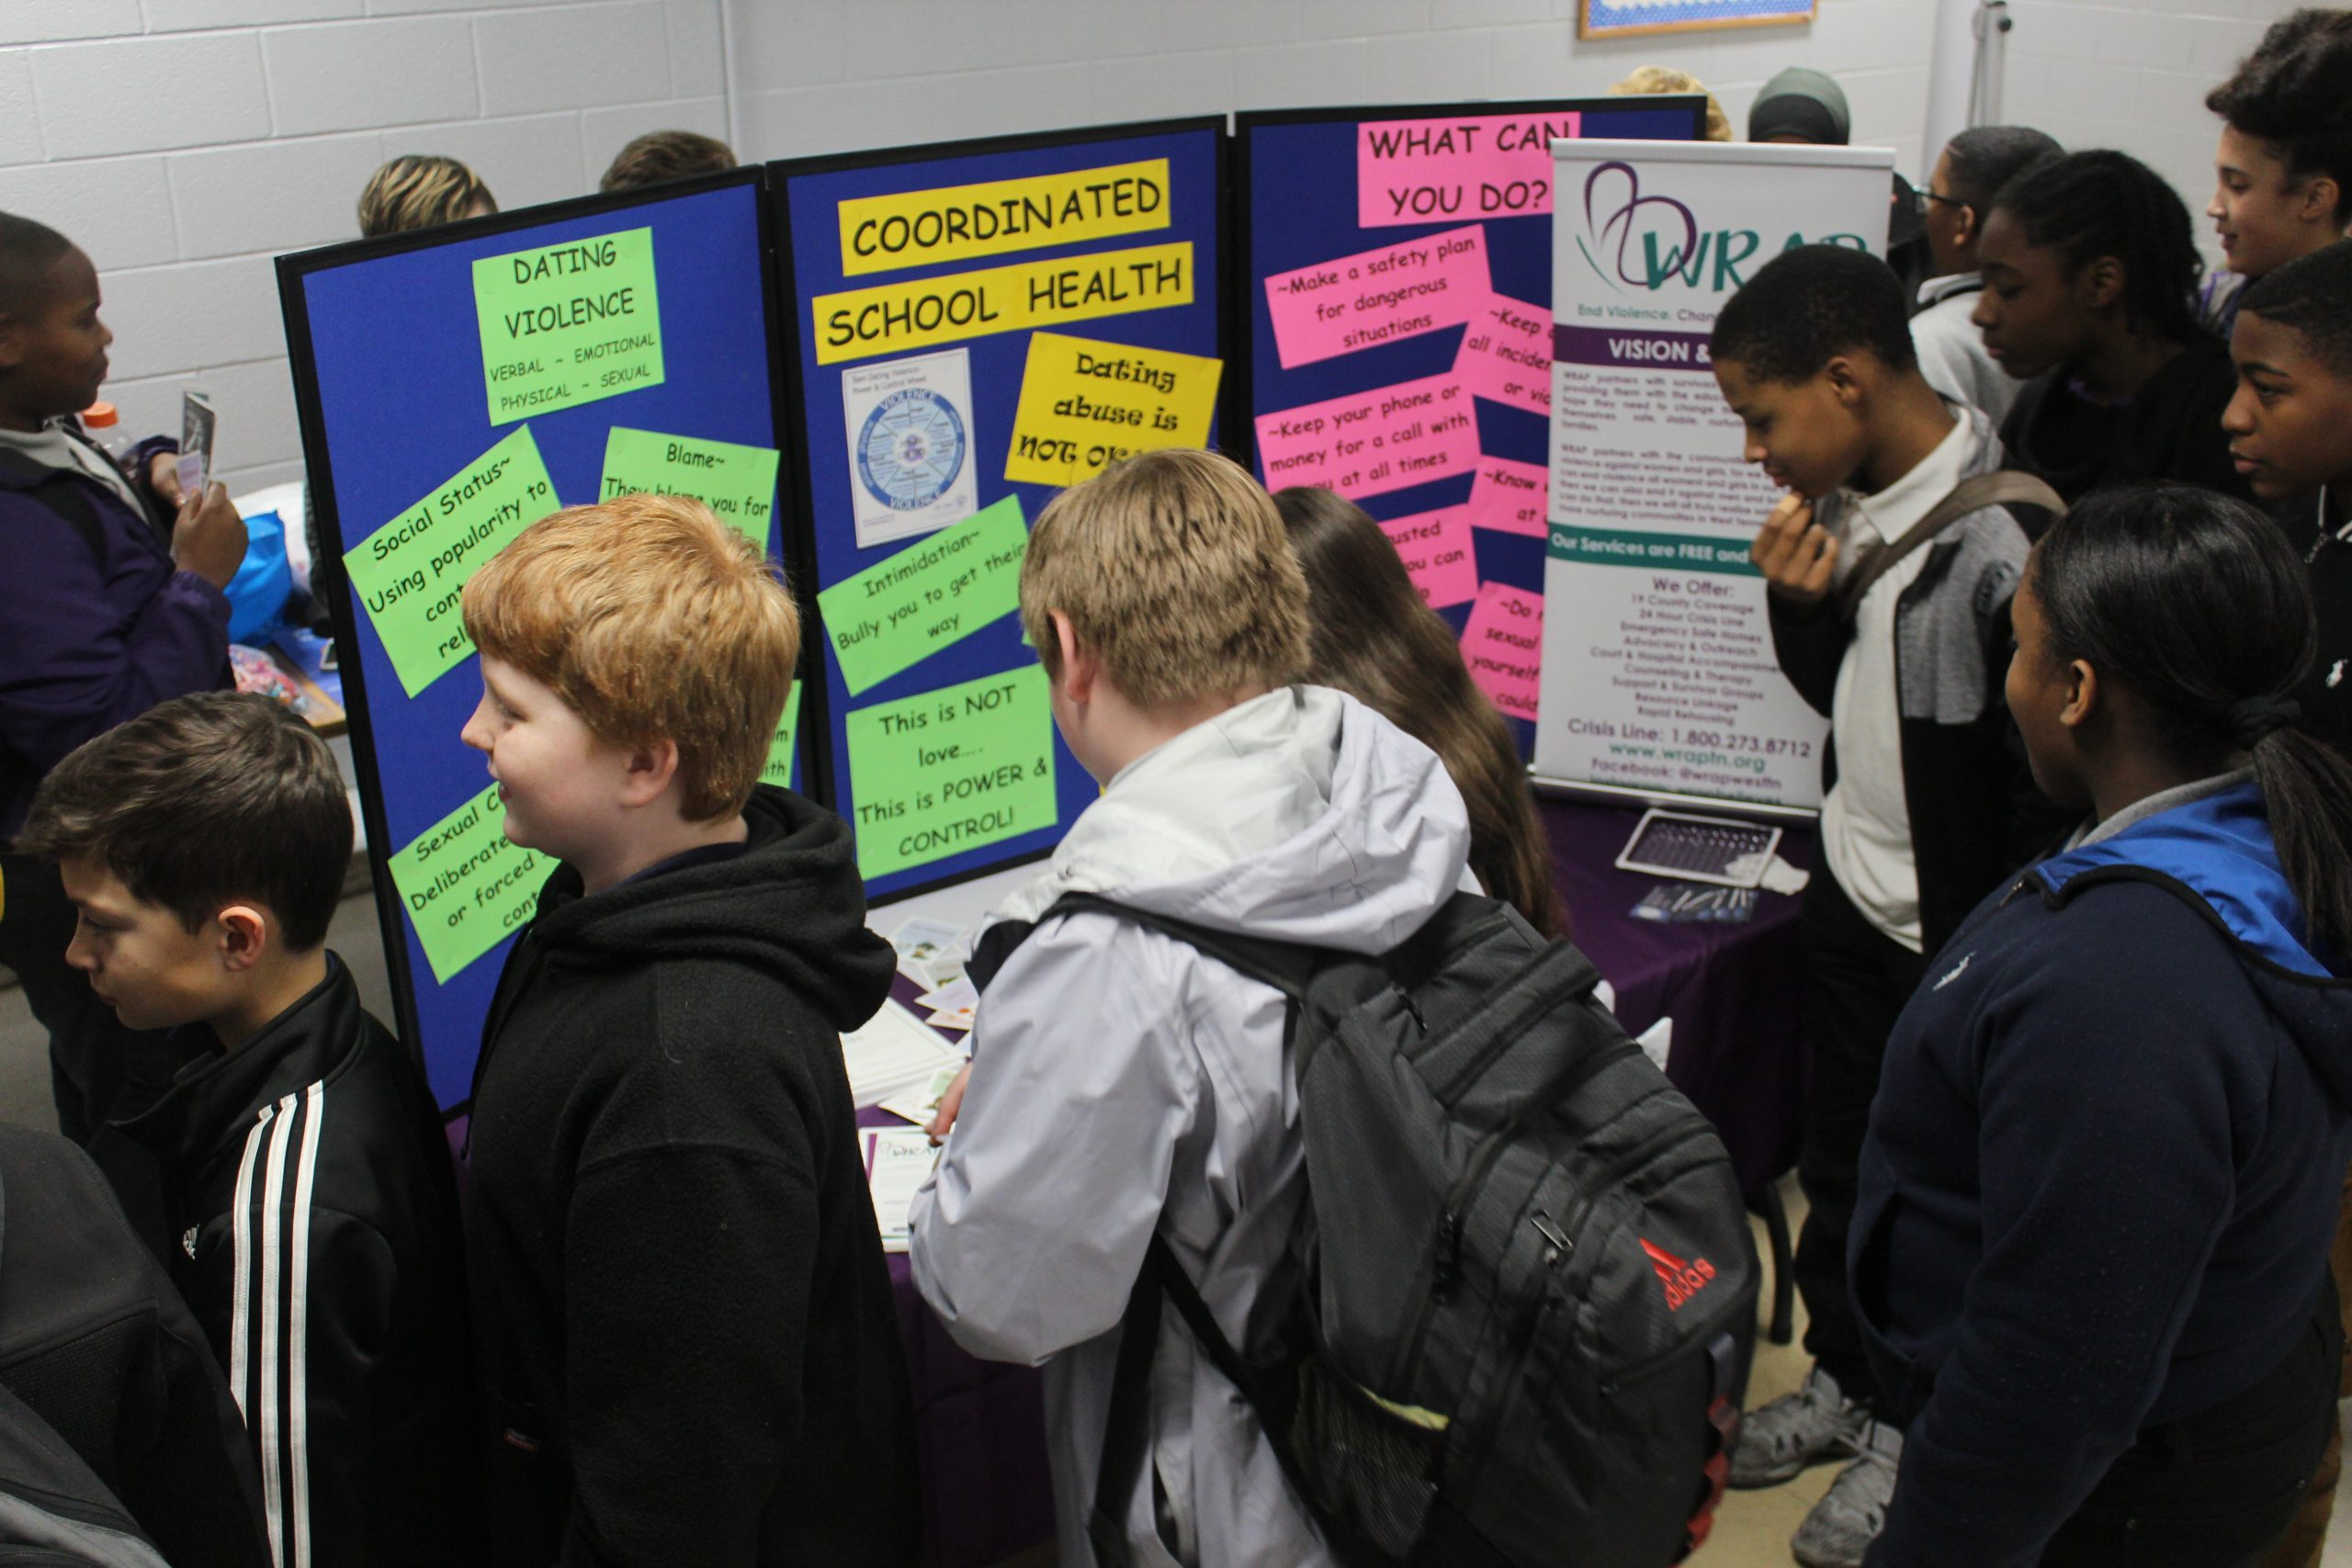 Schools partner with WRAP to spread awareness of teen dating violence